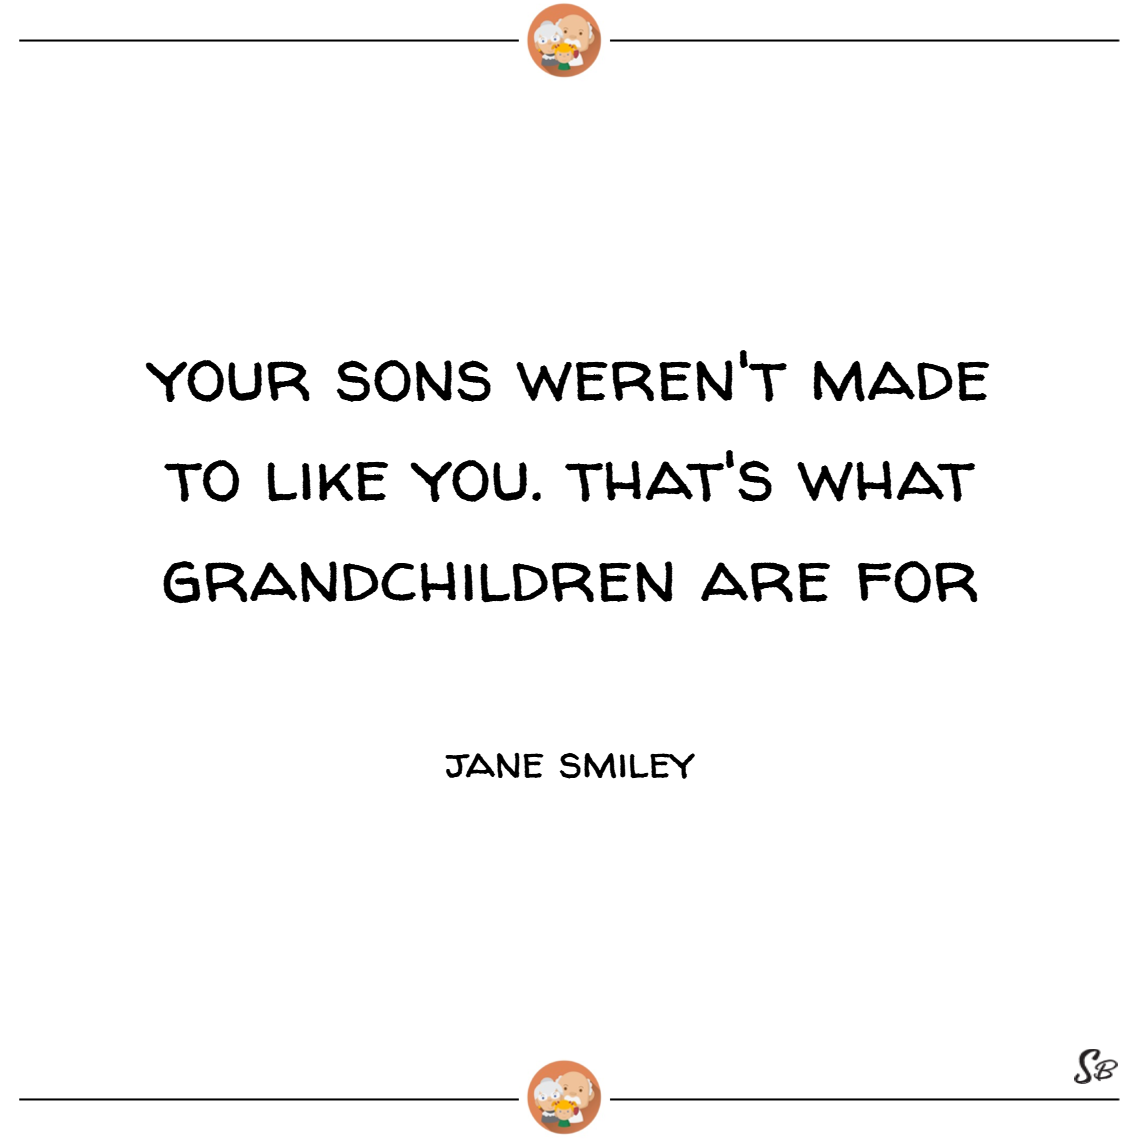 Your sons weren't made to like you. that's what grandchildren are for. – jane smiley the pain